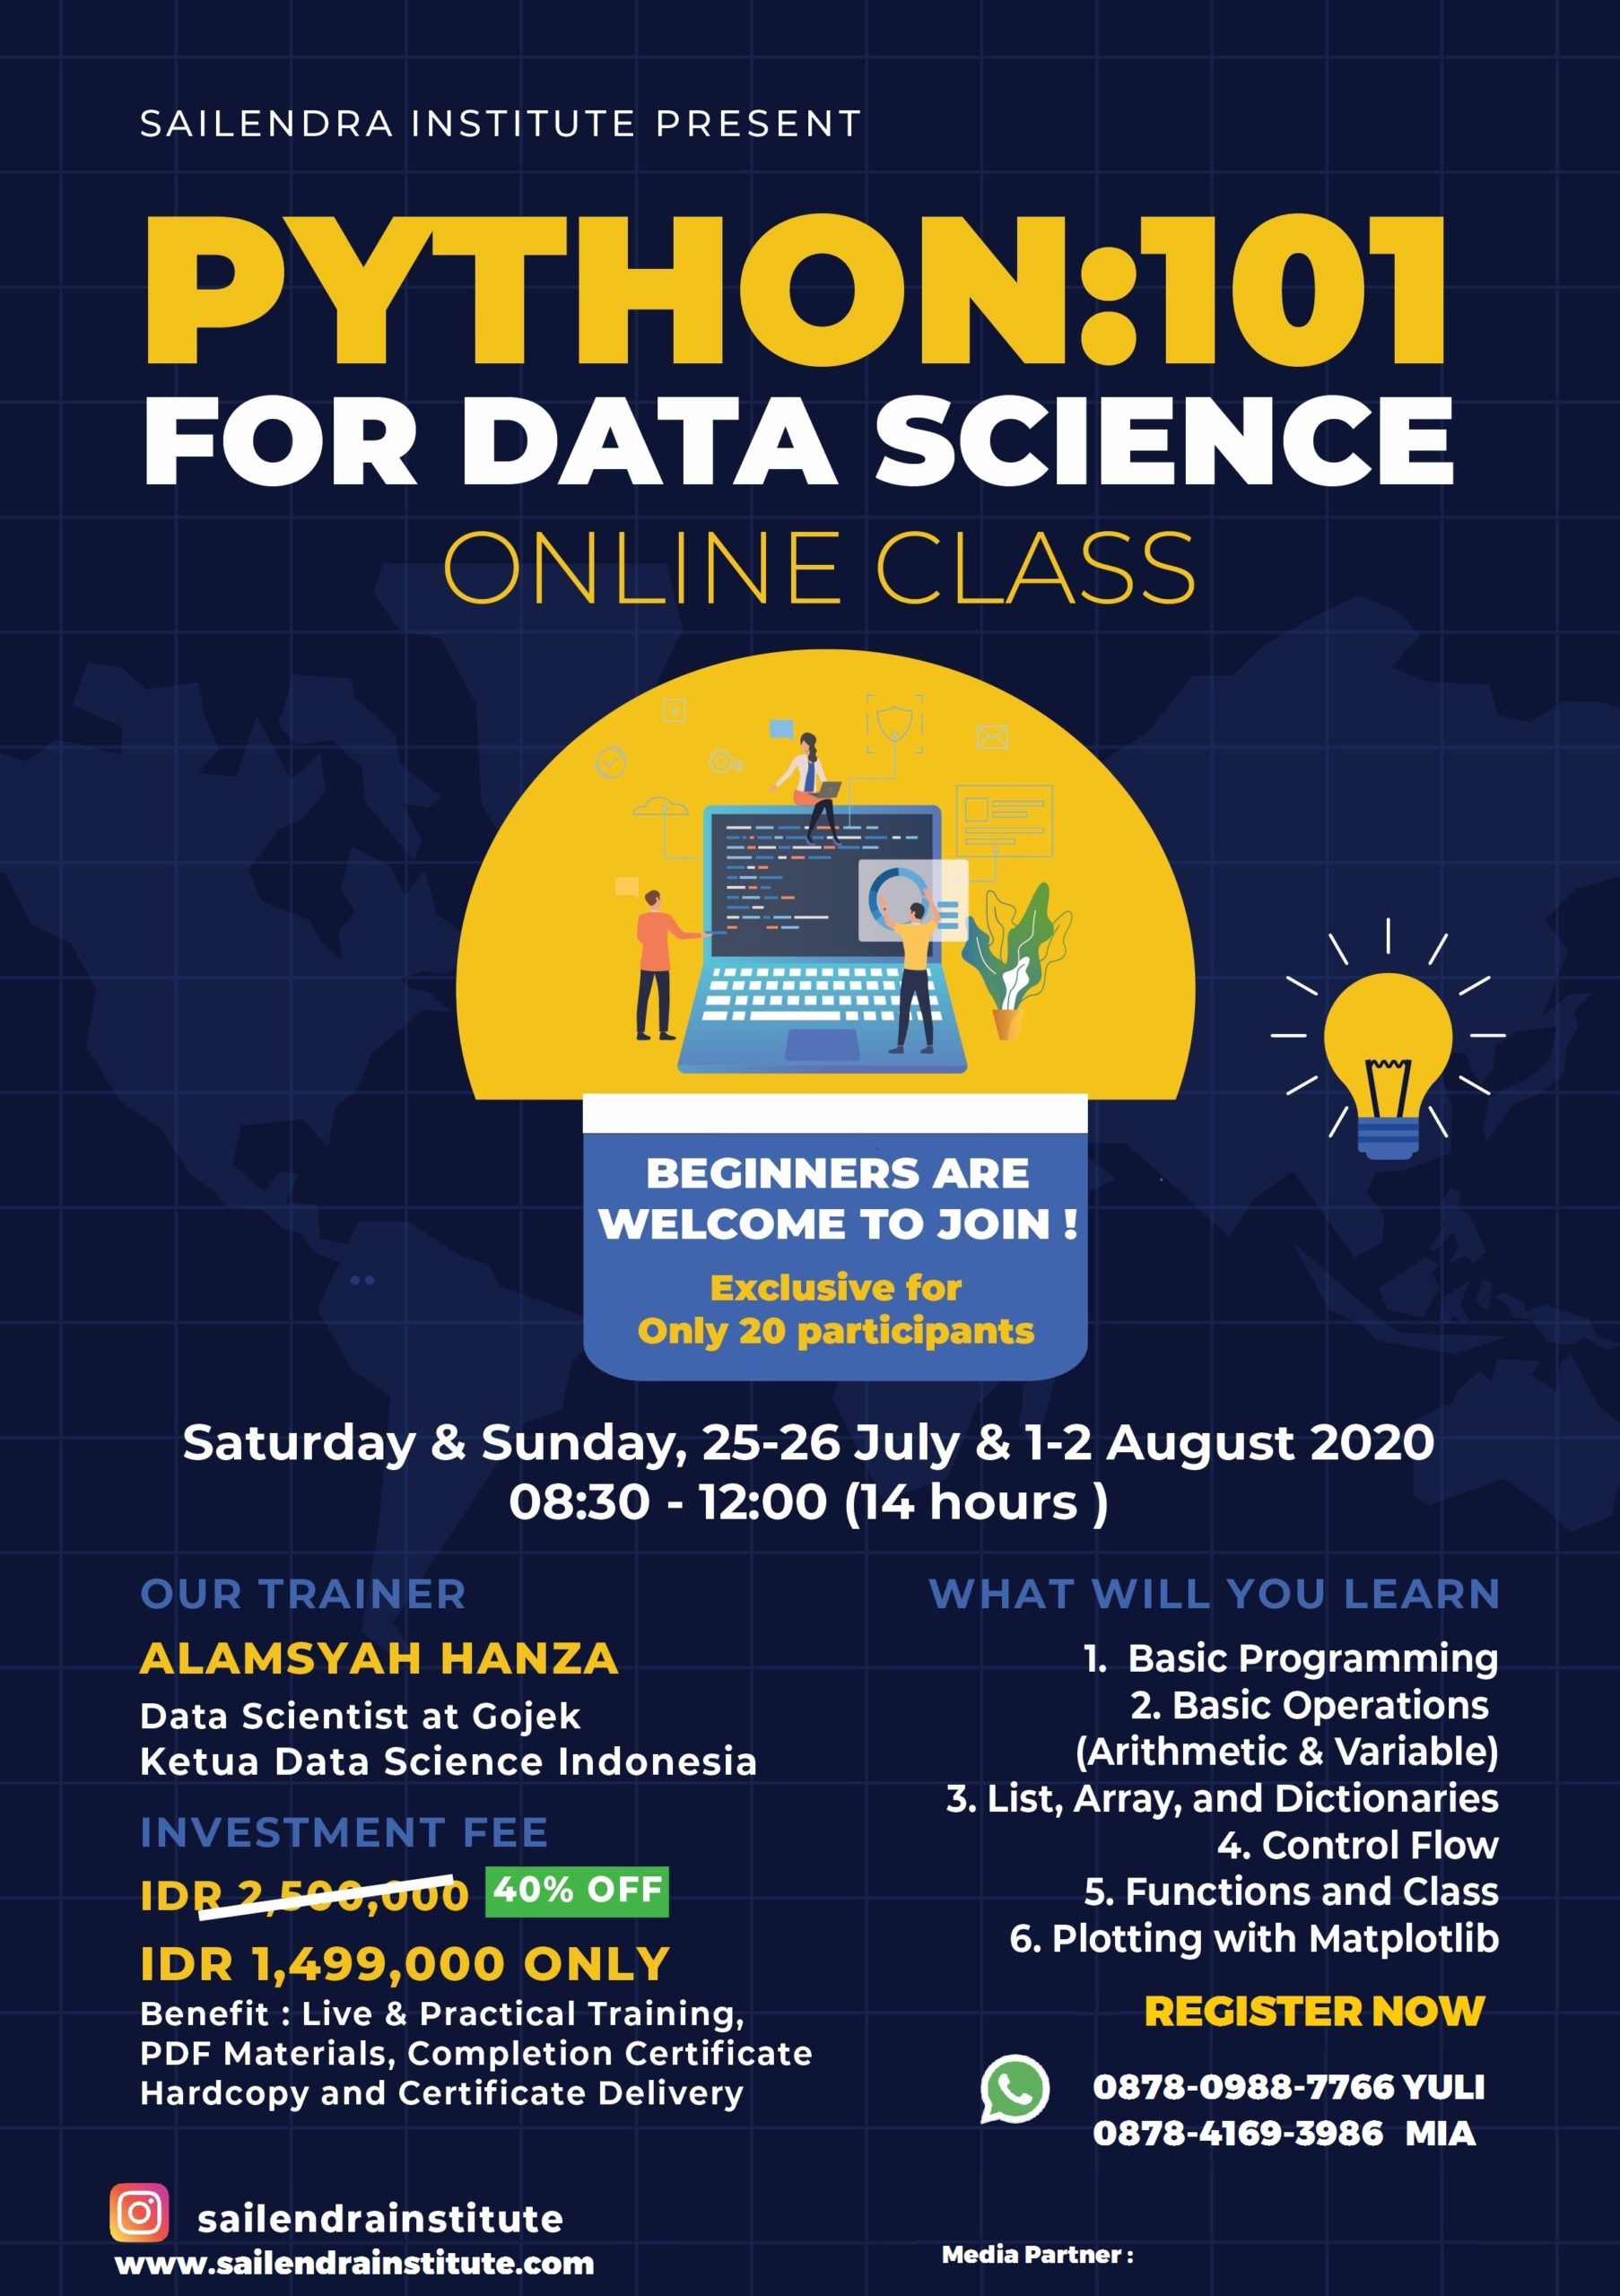 PYTHON:101 for Data Science Online Class by Sailendra Institute